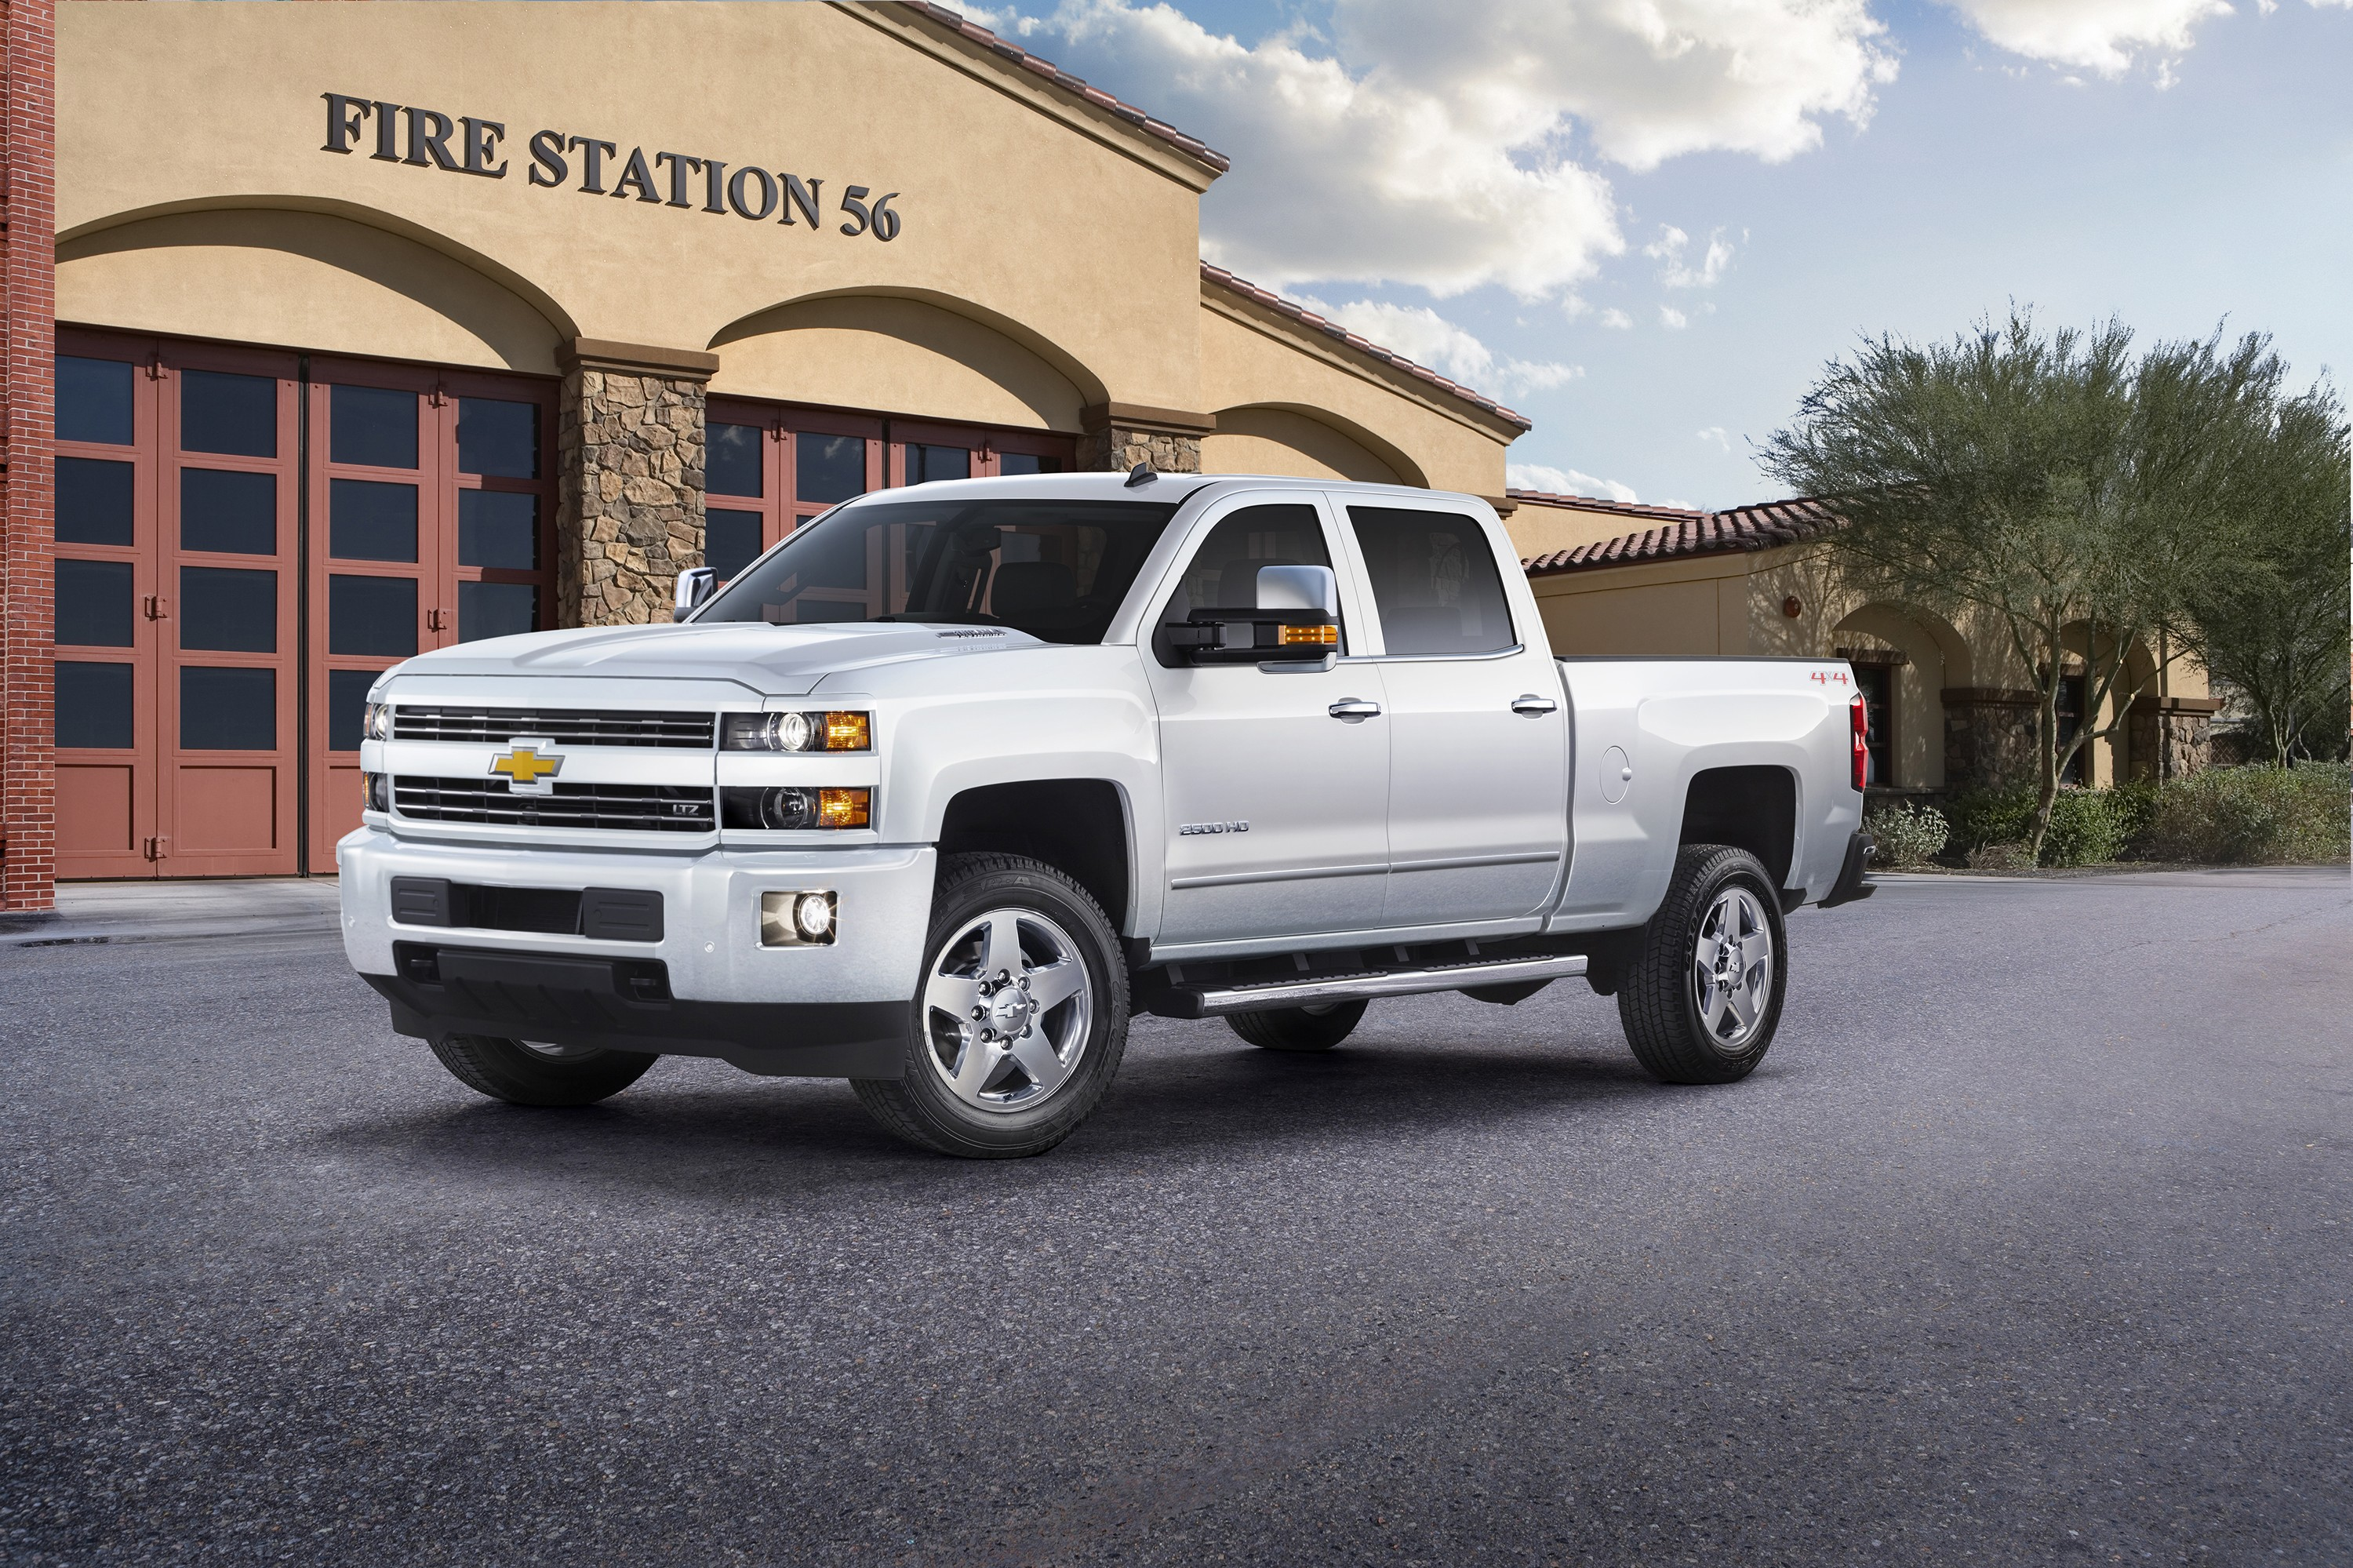 2015 chevrolet silverado 2500 hd aces frame twist test beats ford f 250 super duty autoevolution. Black Bedroom Furniture Sets. Home Design Ideas